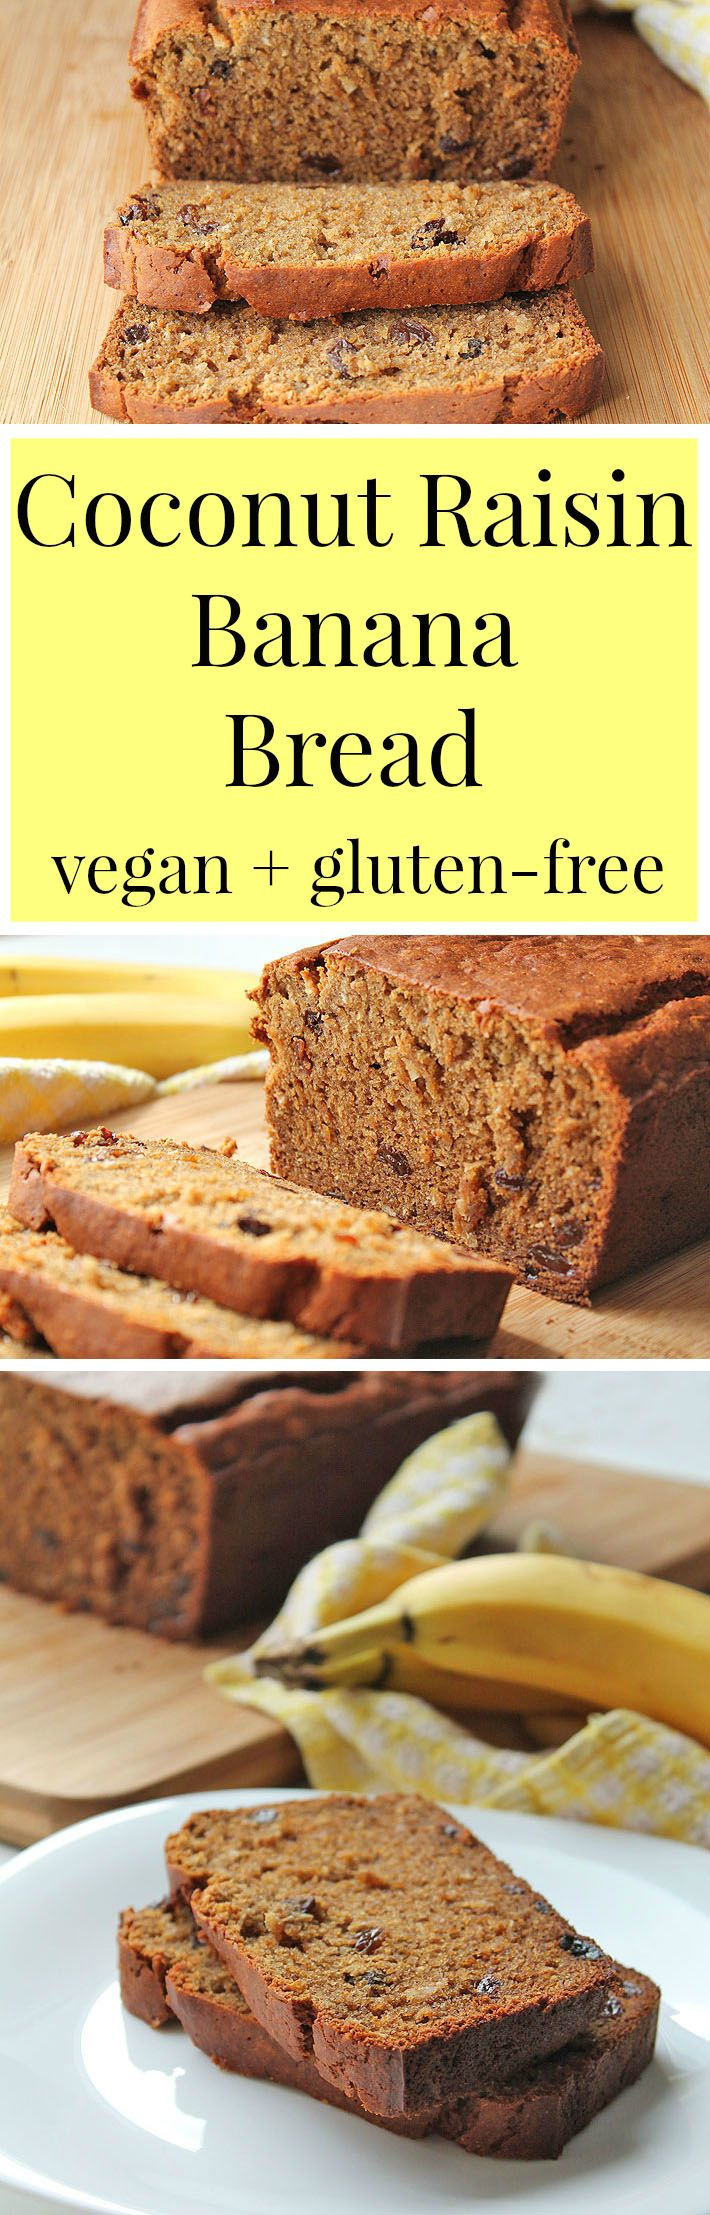 1000+ images about GOOD GLUTEN-FREE FOOD. on Pinterest | Glutenfree ...